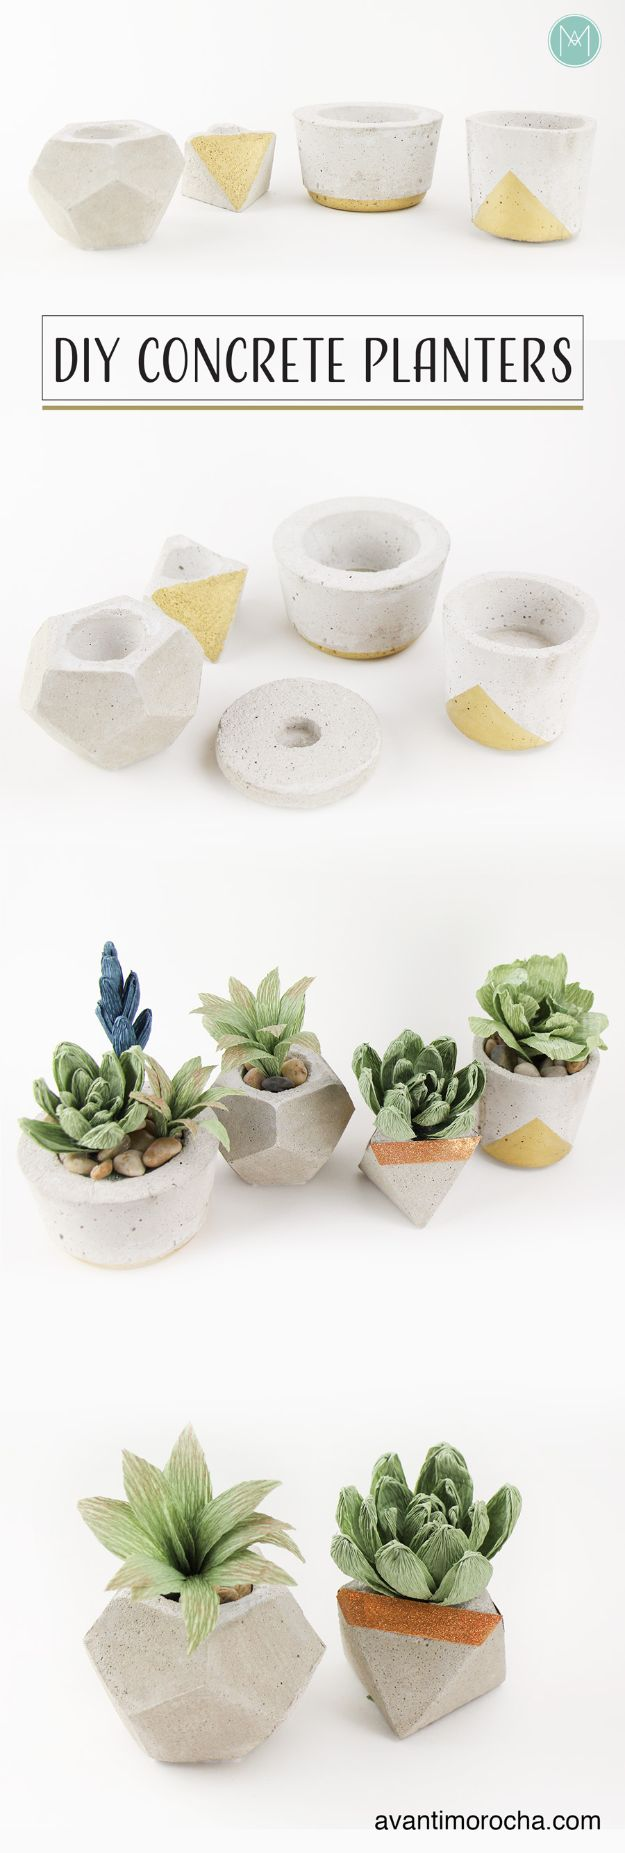 16 Wicked DIY Concrete Craft Ideas To Add To Your Decor